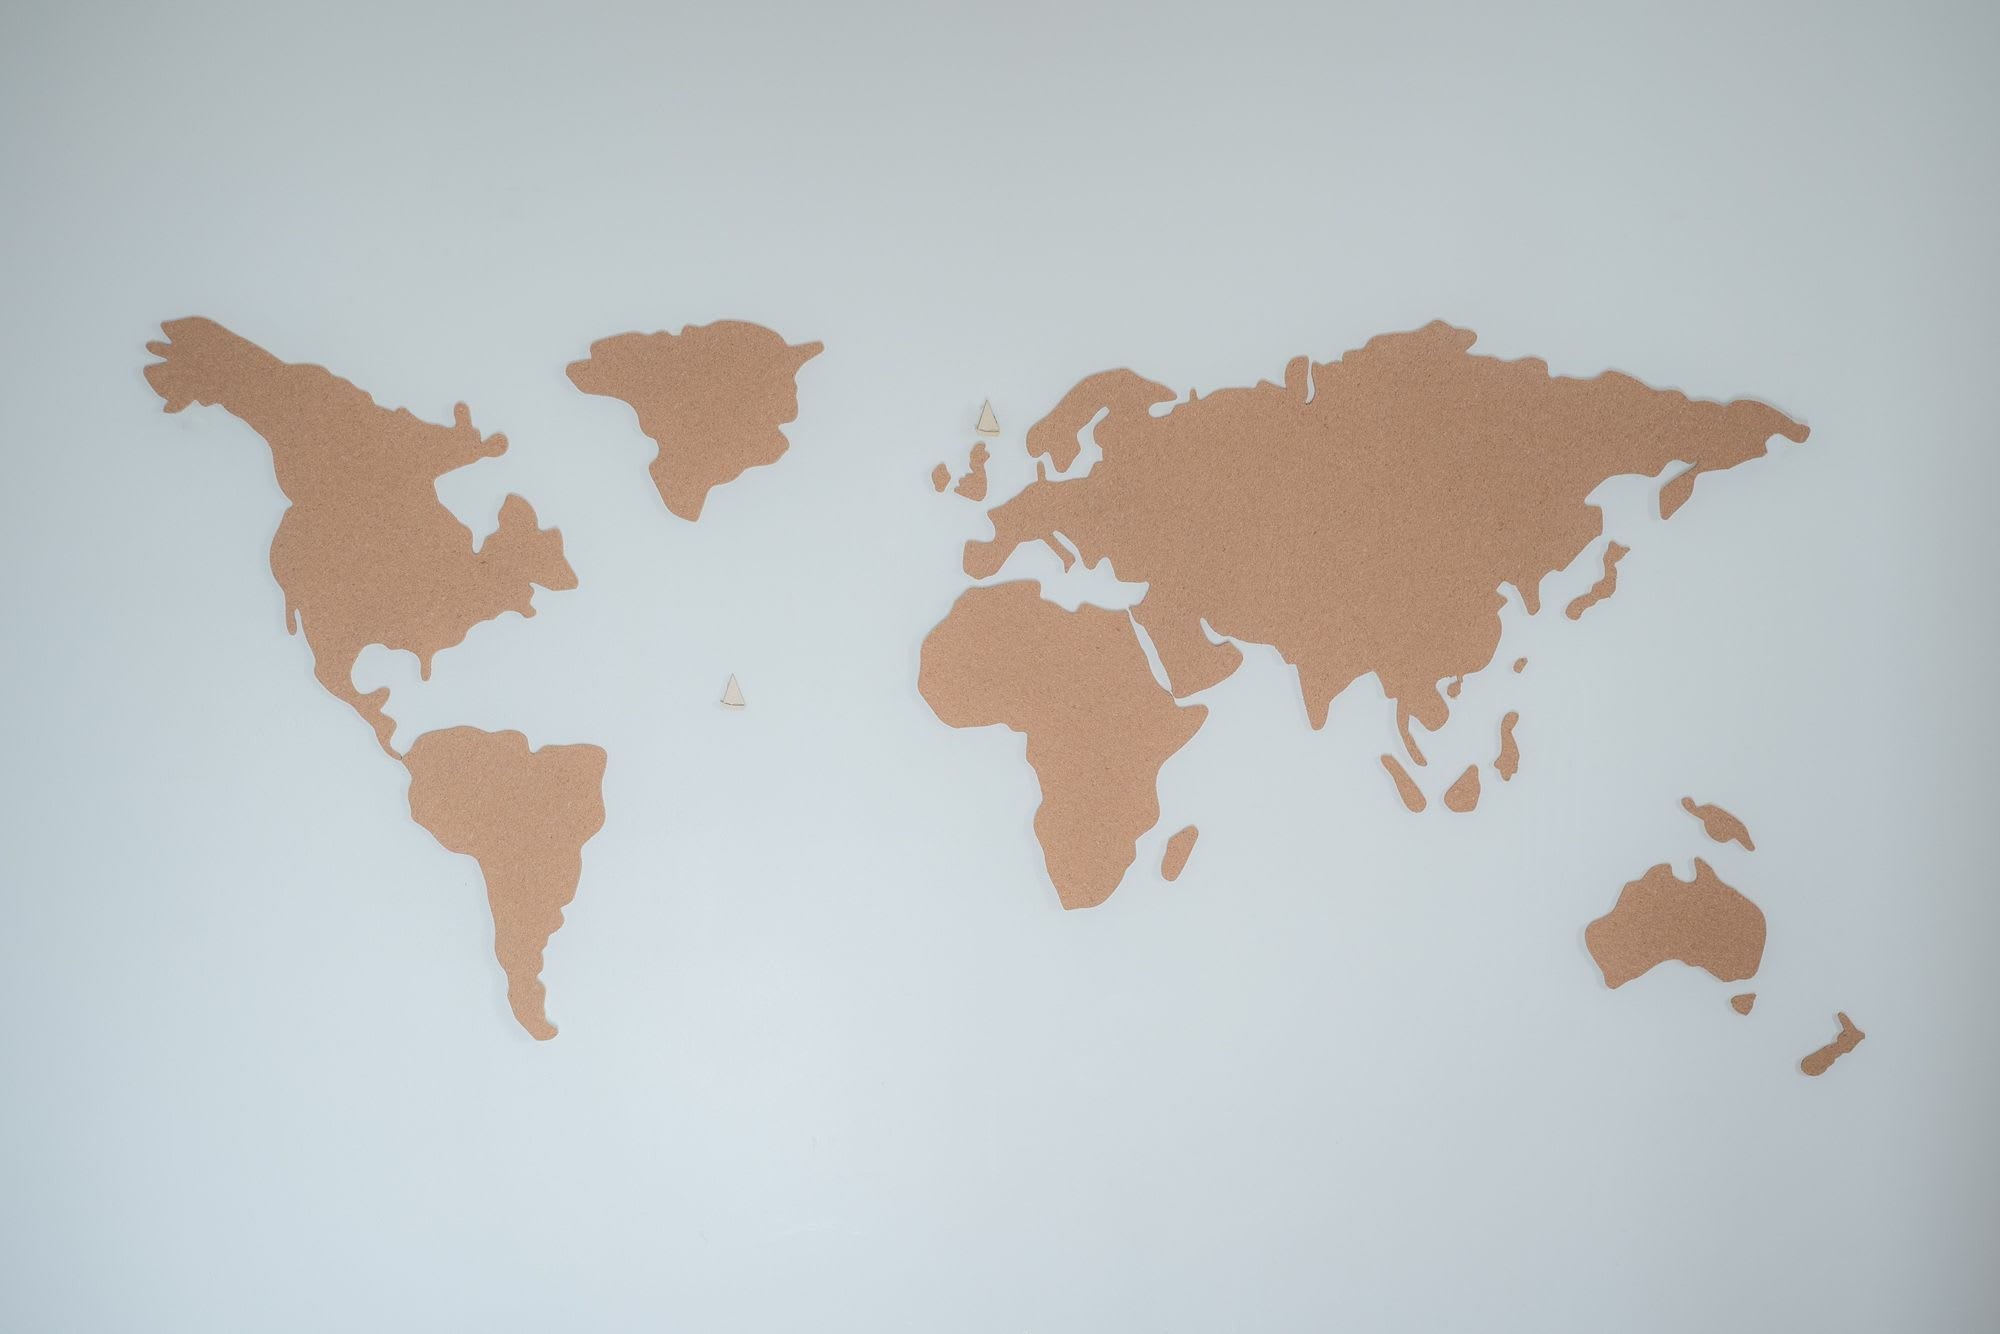 Background Image for Working in an International Community